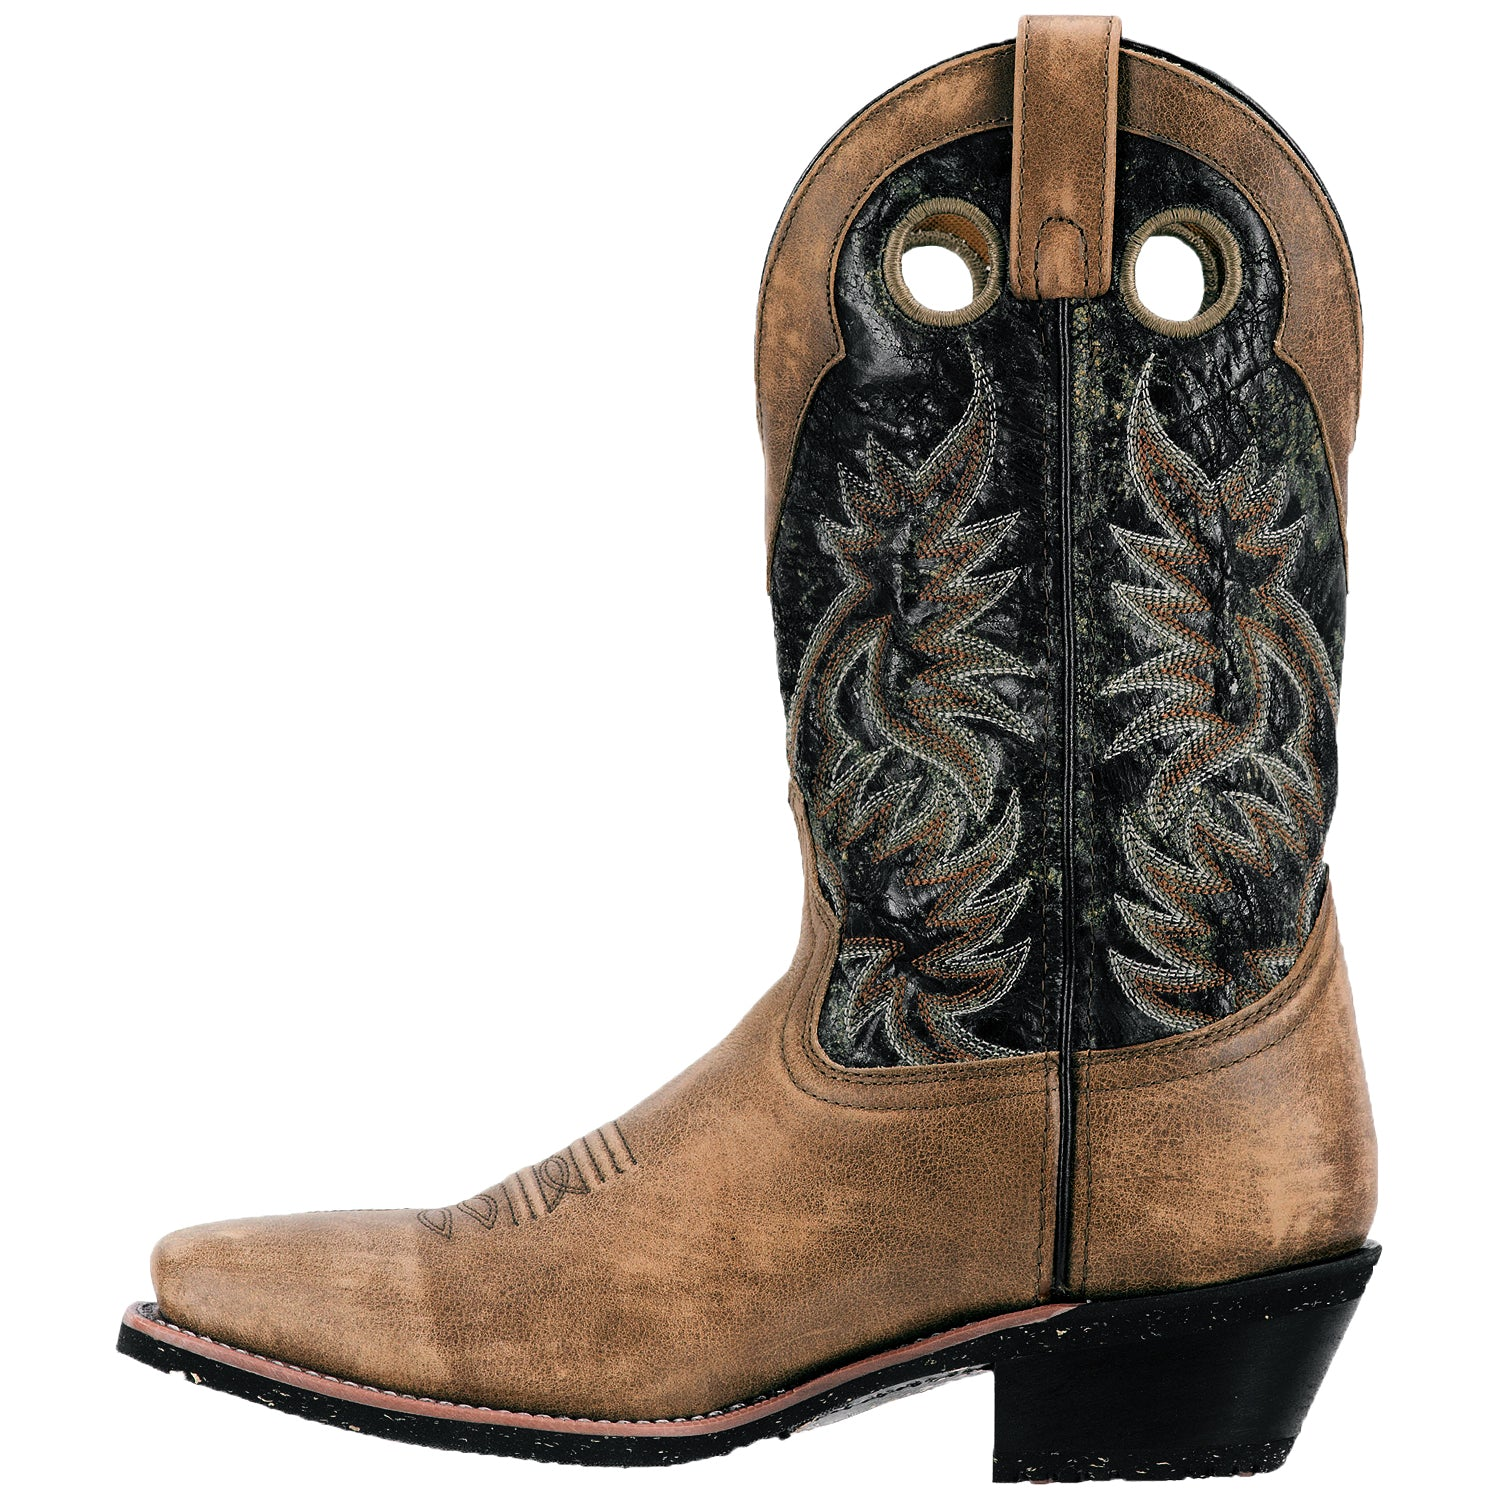 STILLWATER LEATHER BOOT